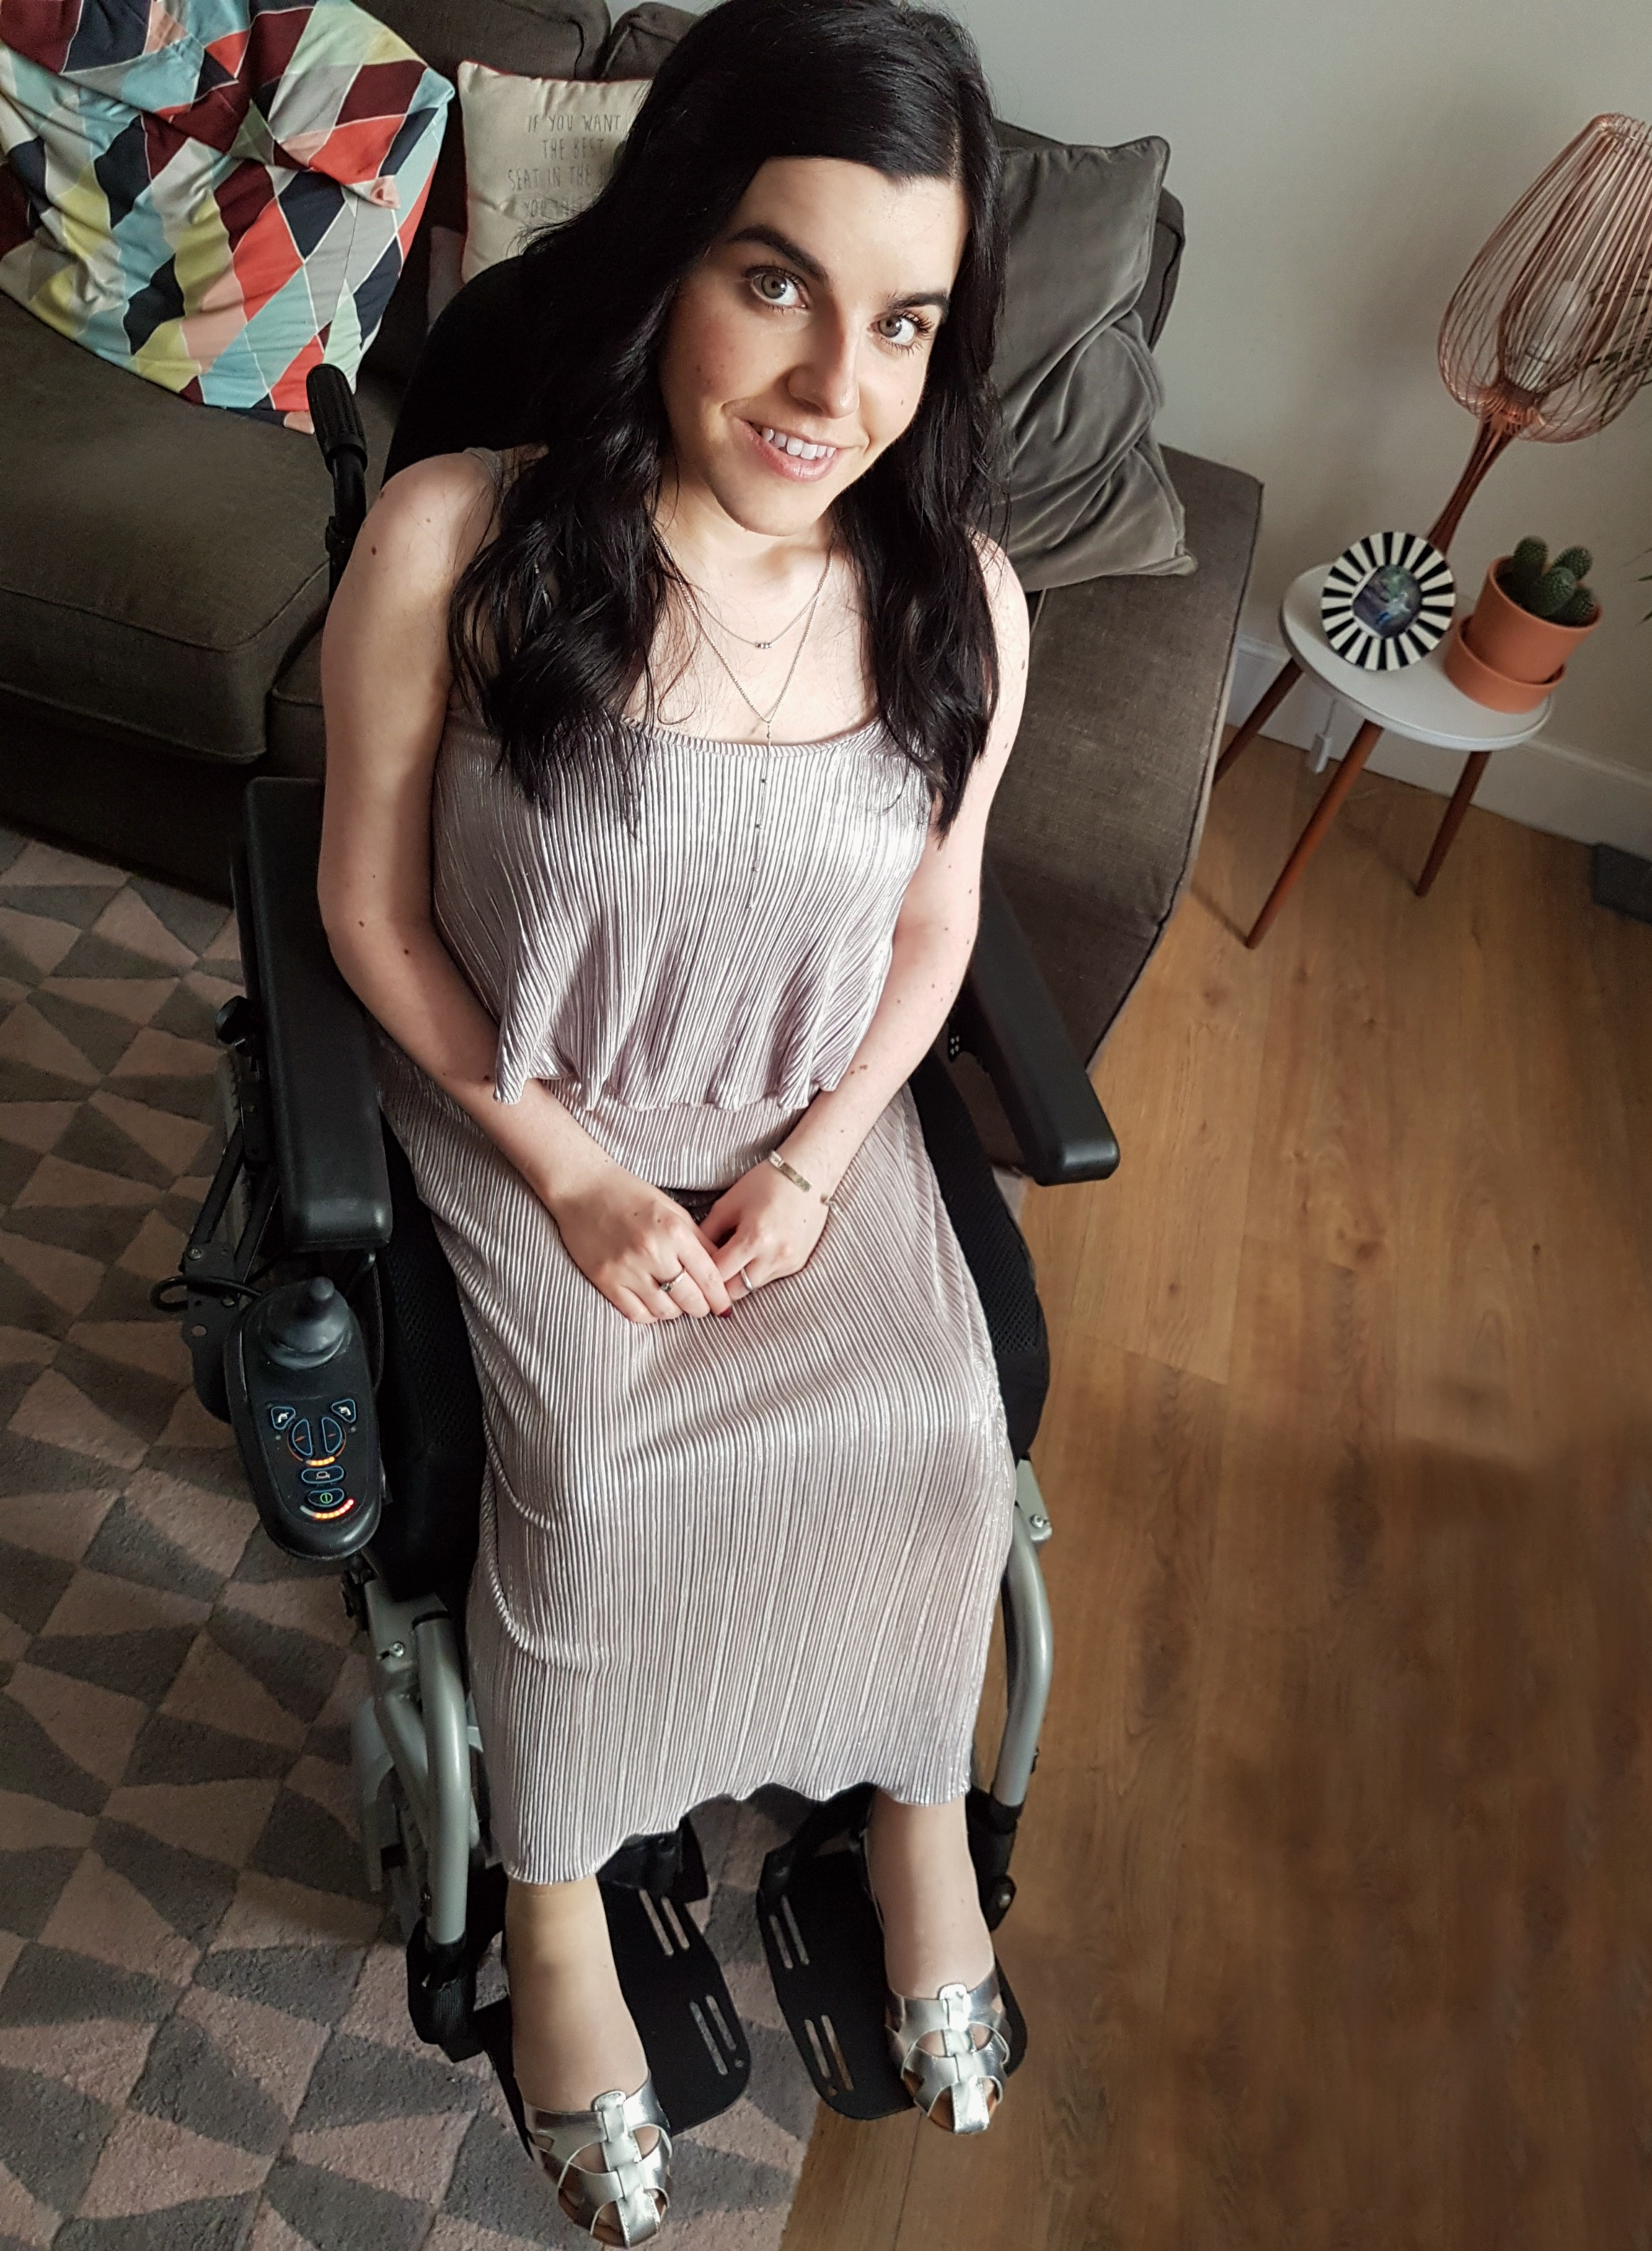 Wheelchair Fashion: Finding the perfect dress